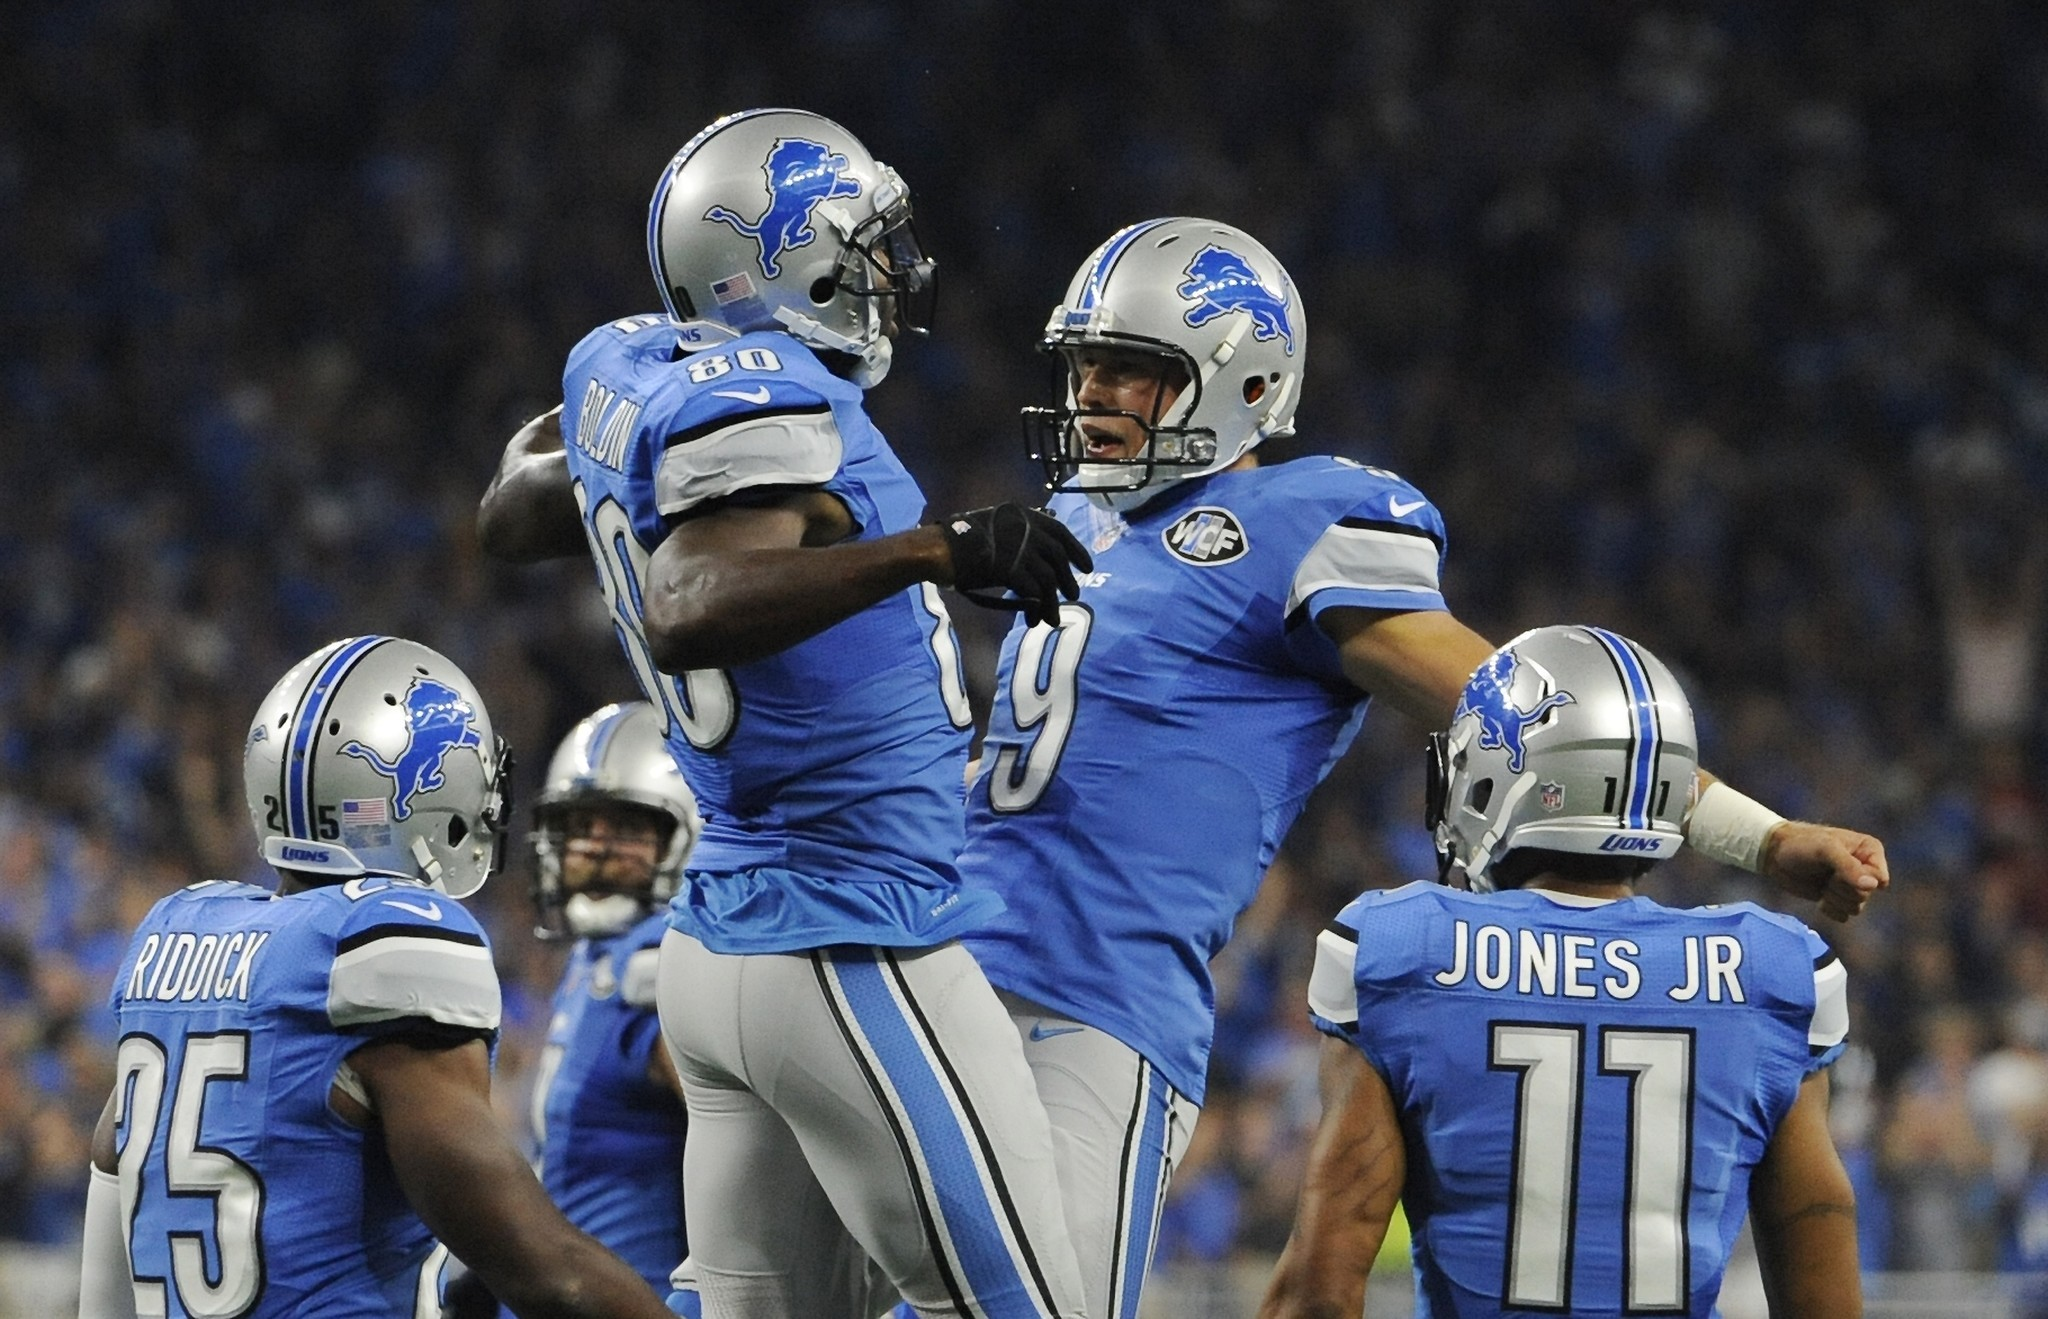 Ct-lions-offense-challenge-for-bears-spt-0930-20160929